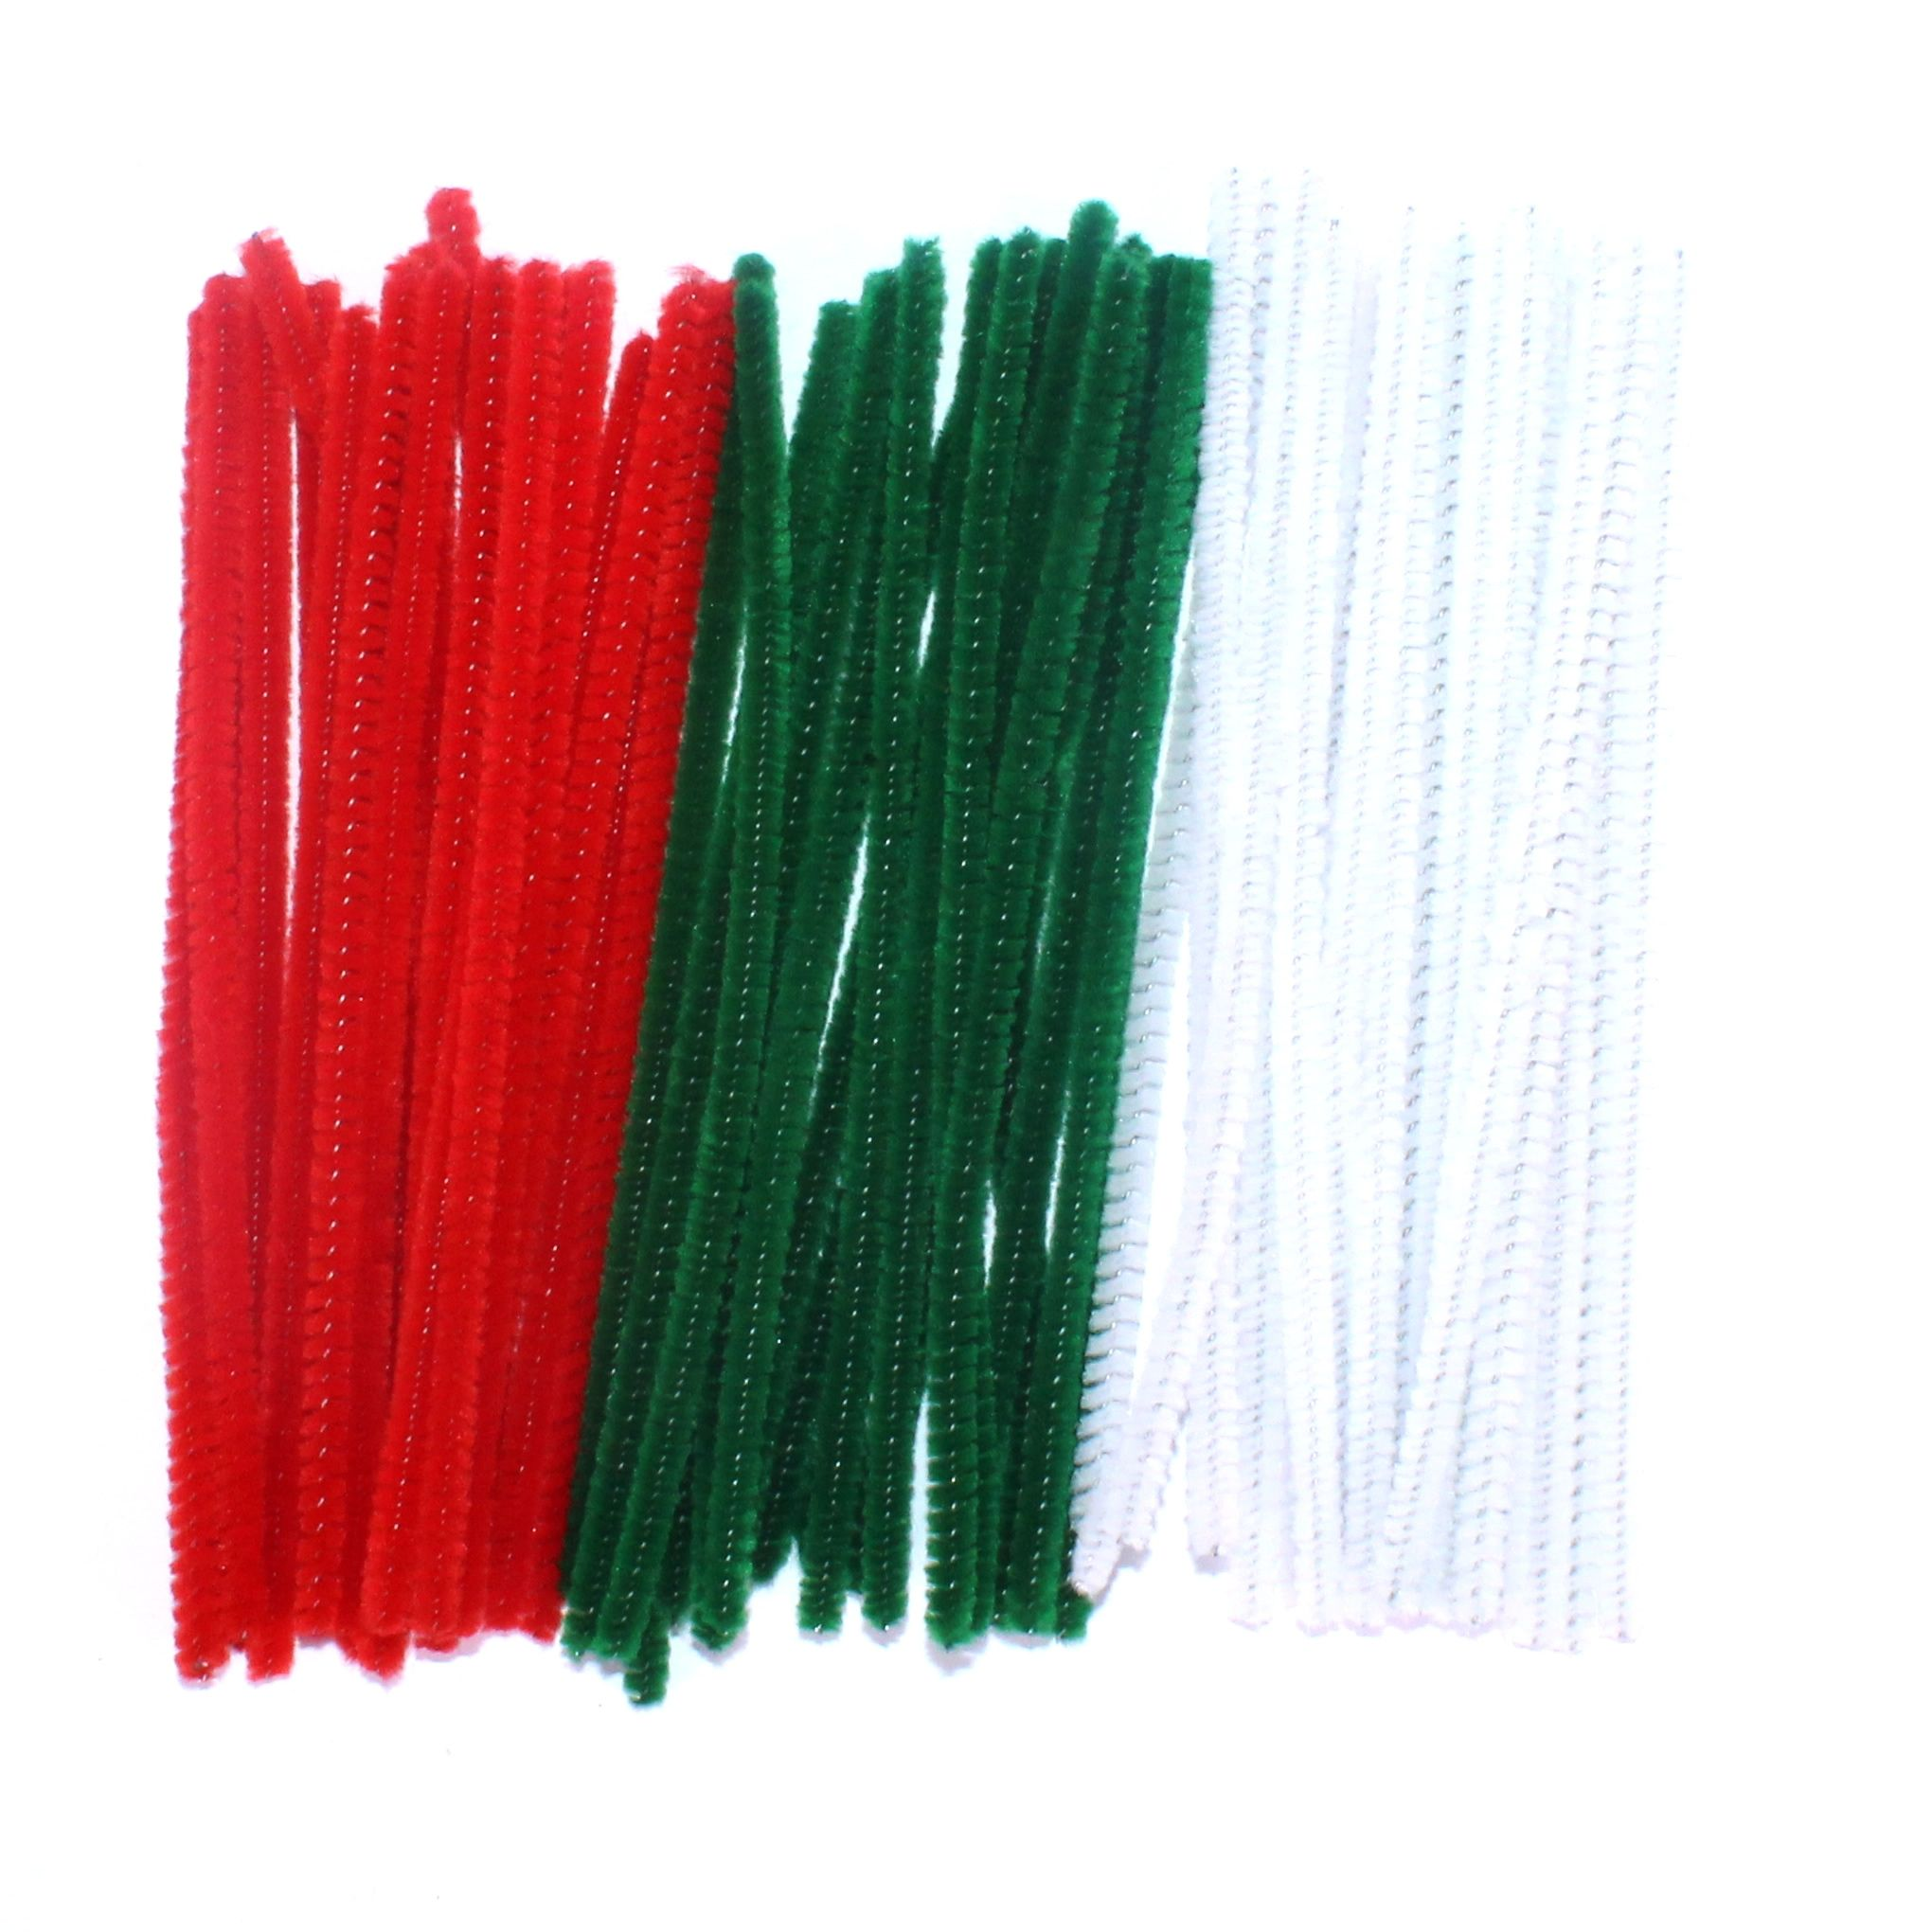 Festive Christmas pipecleaners